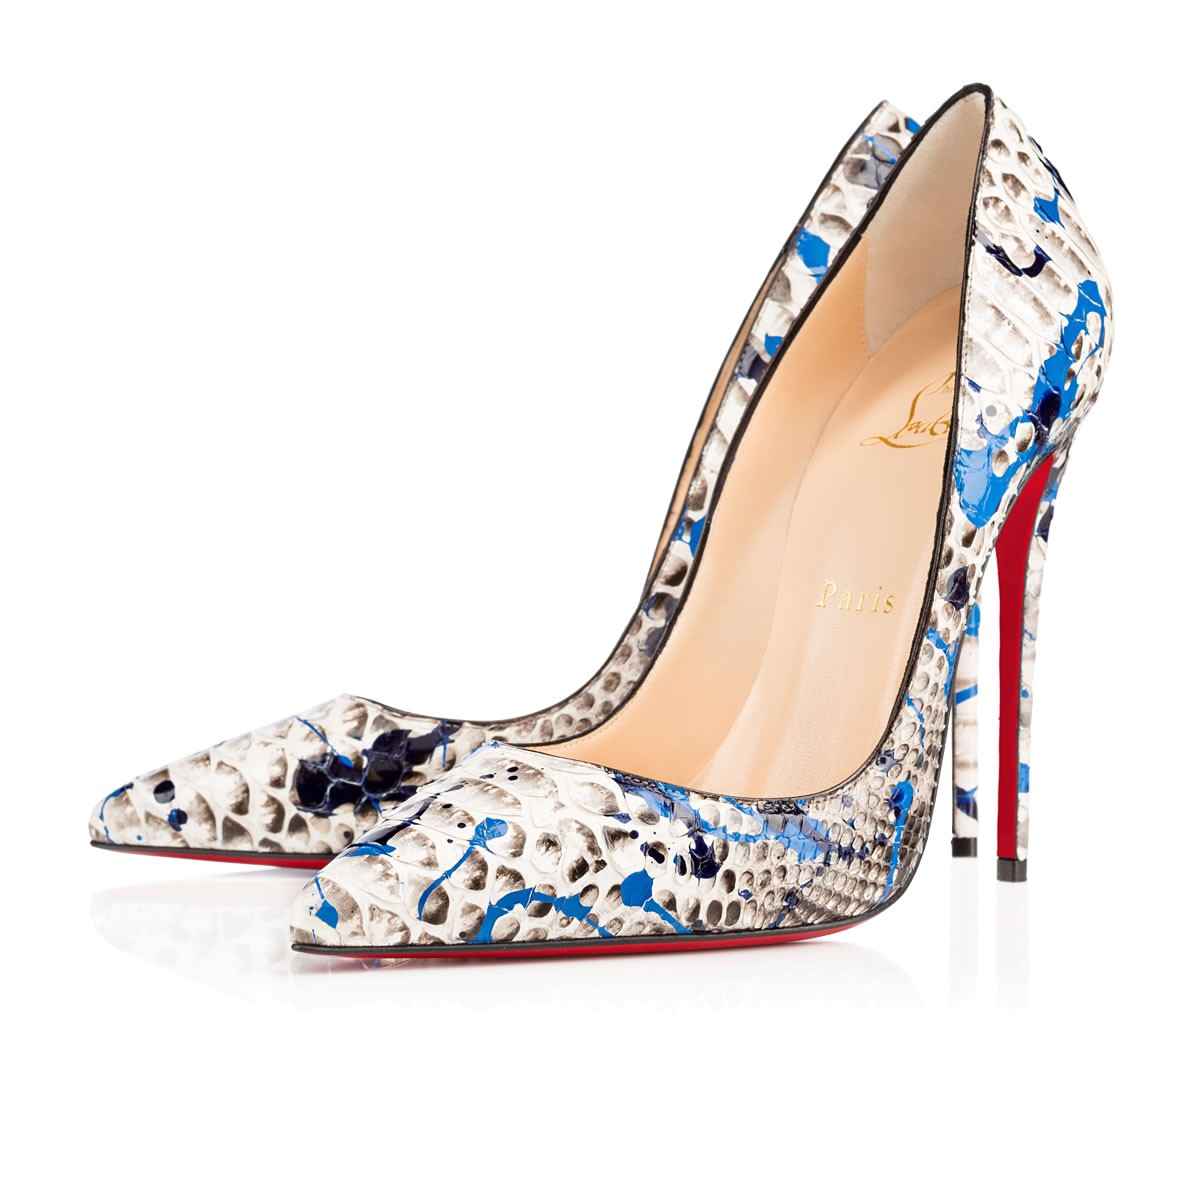 3a778201fddd CHRISTIAN LOUBOUTIN DÉCOLLETÉ 100 PAINTED PYTHON PUMPS